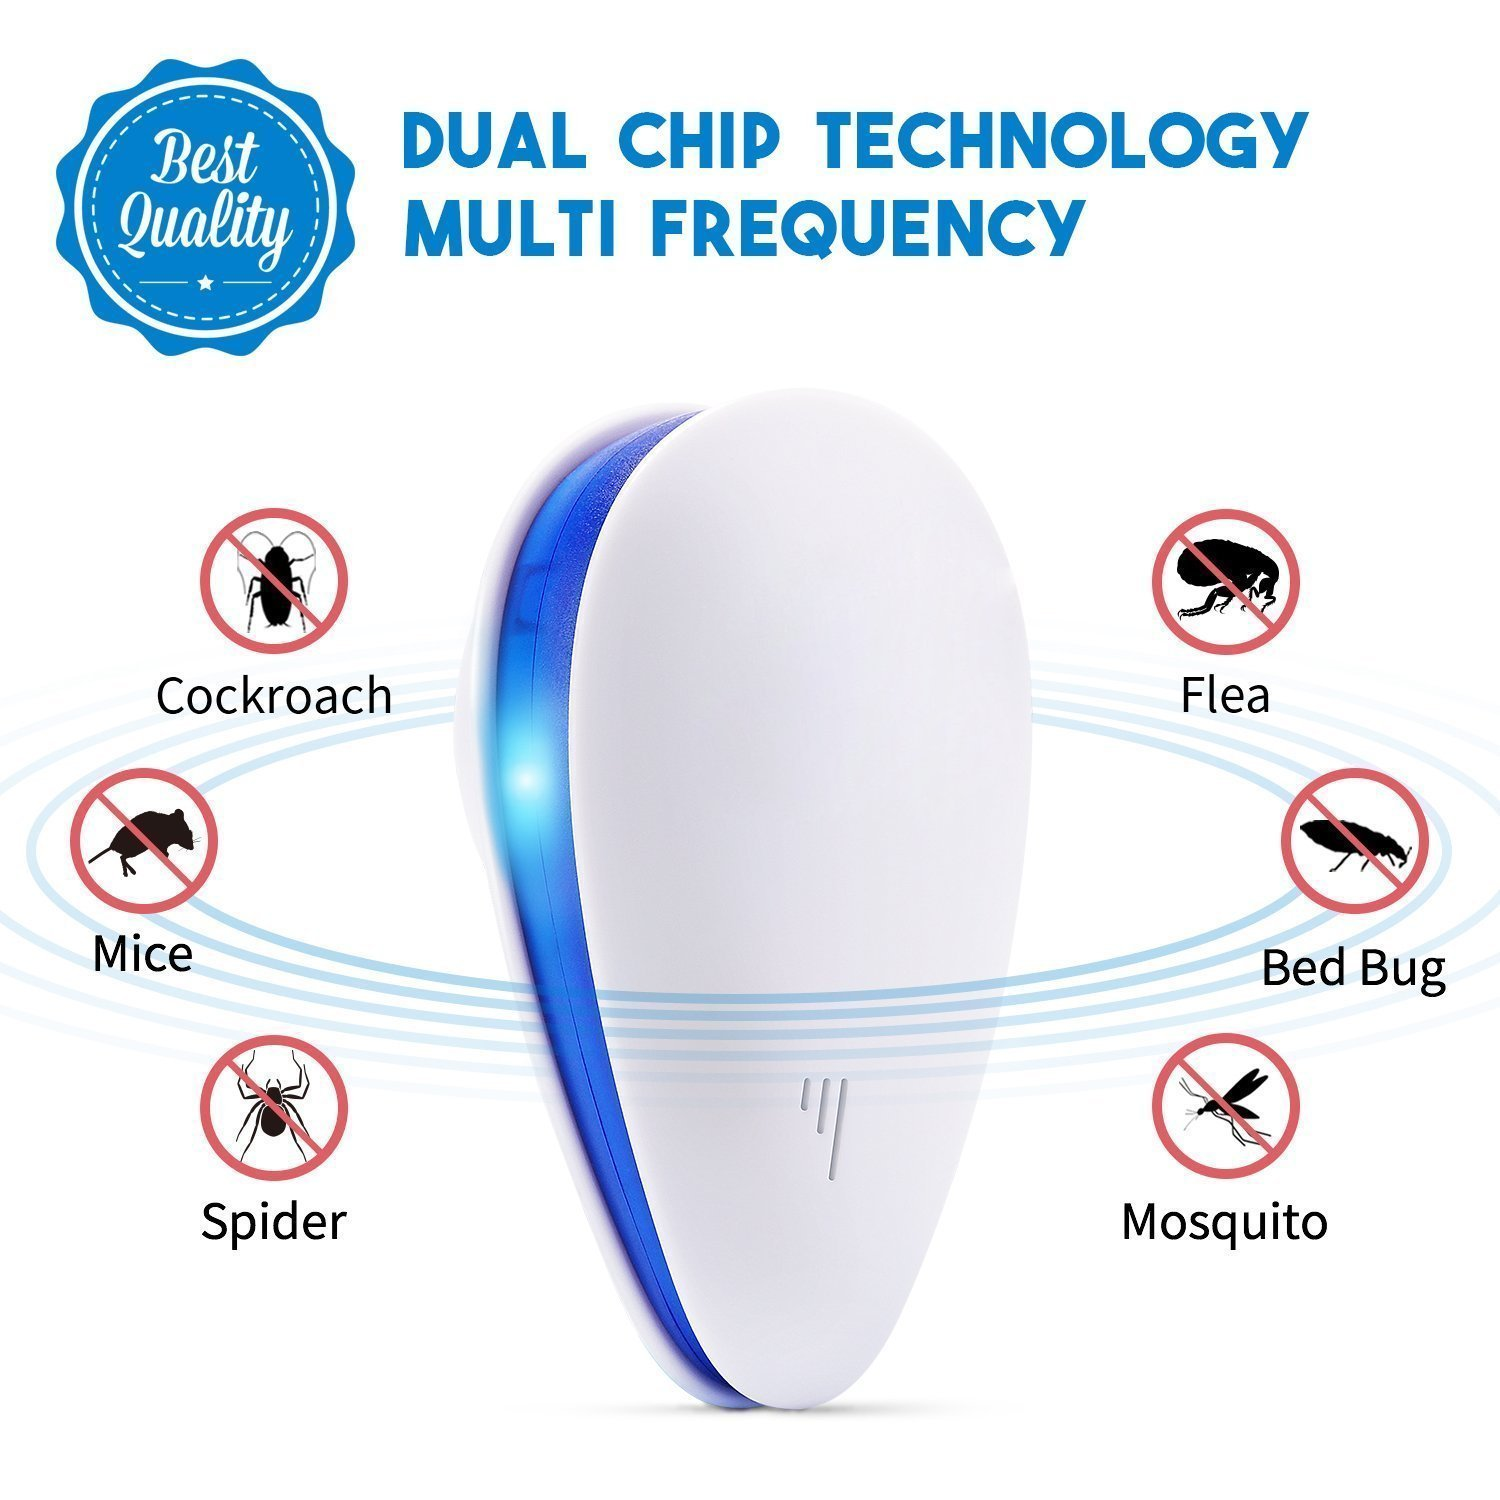 Ultrasonic Pest Repeller Lasaoon Eletronic Is The Circuit Diagram Of An Mosquito Repellerthe Repellent Plug In Insect 6 Pack Garden Outdoor